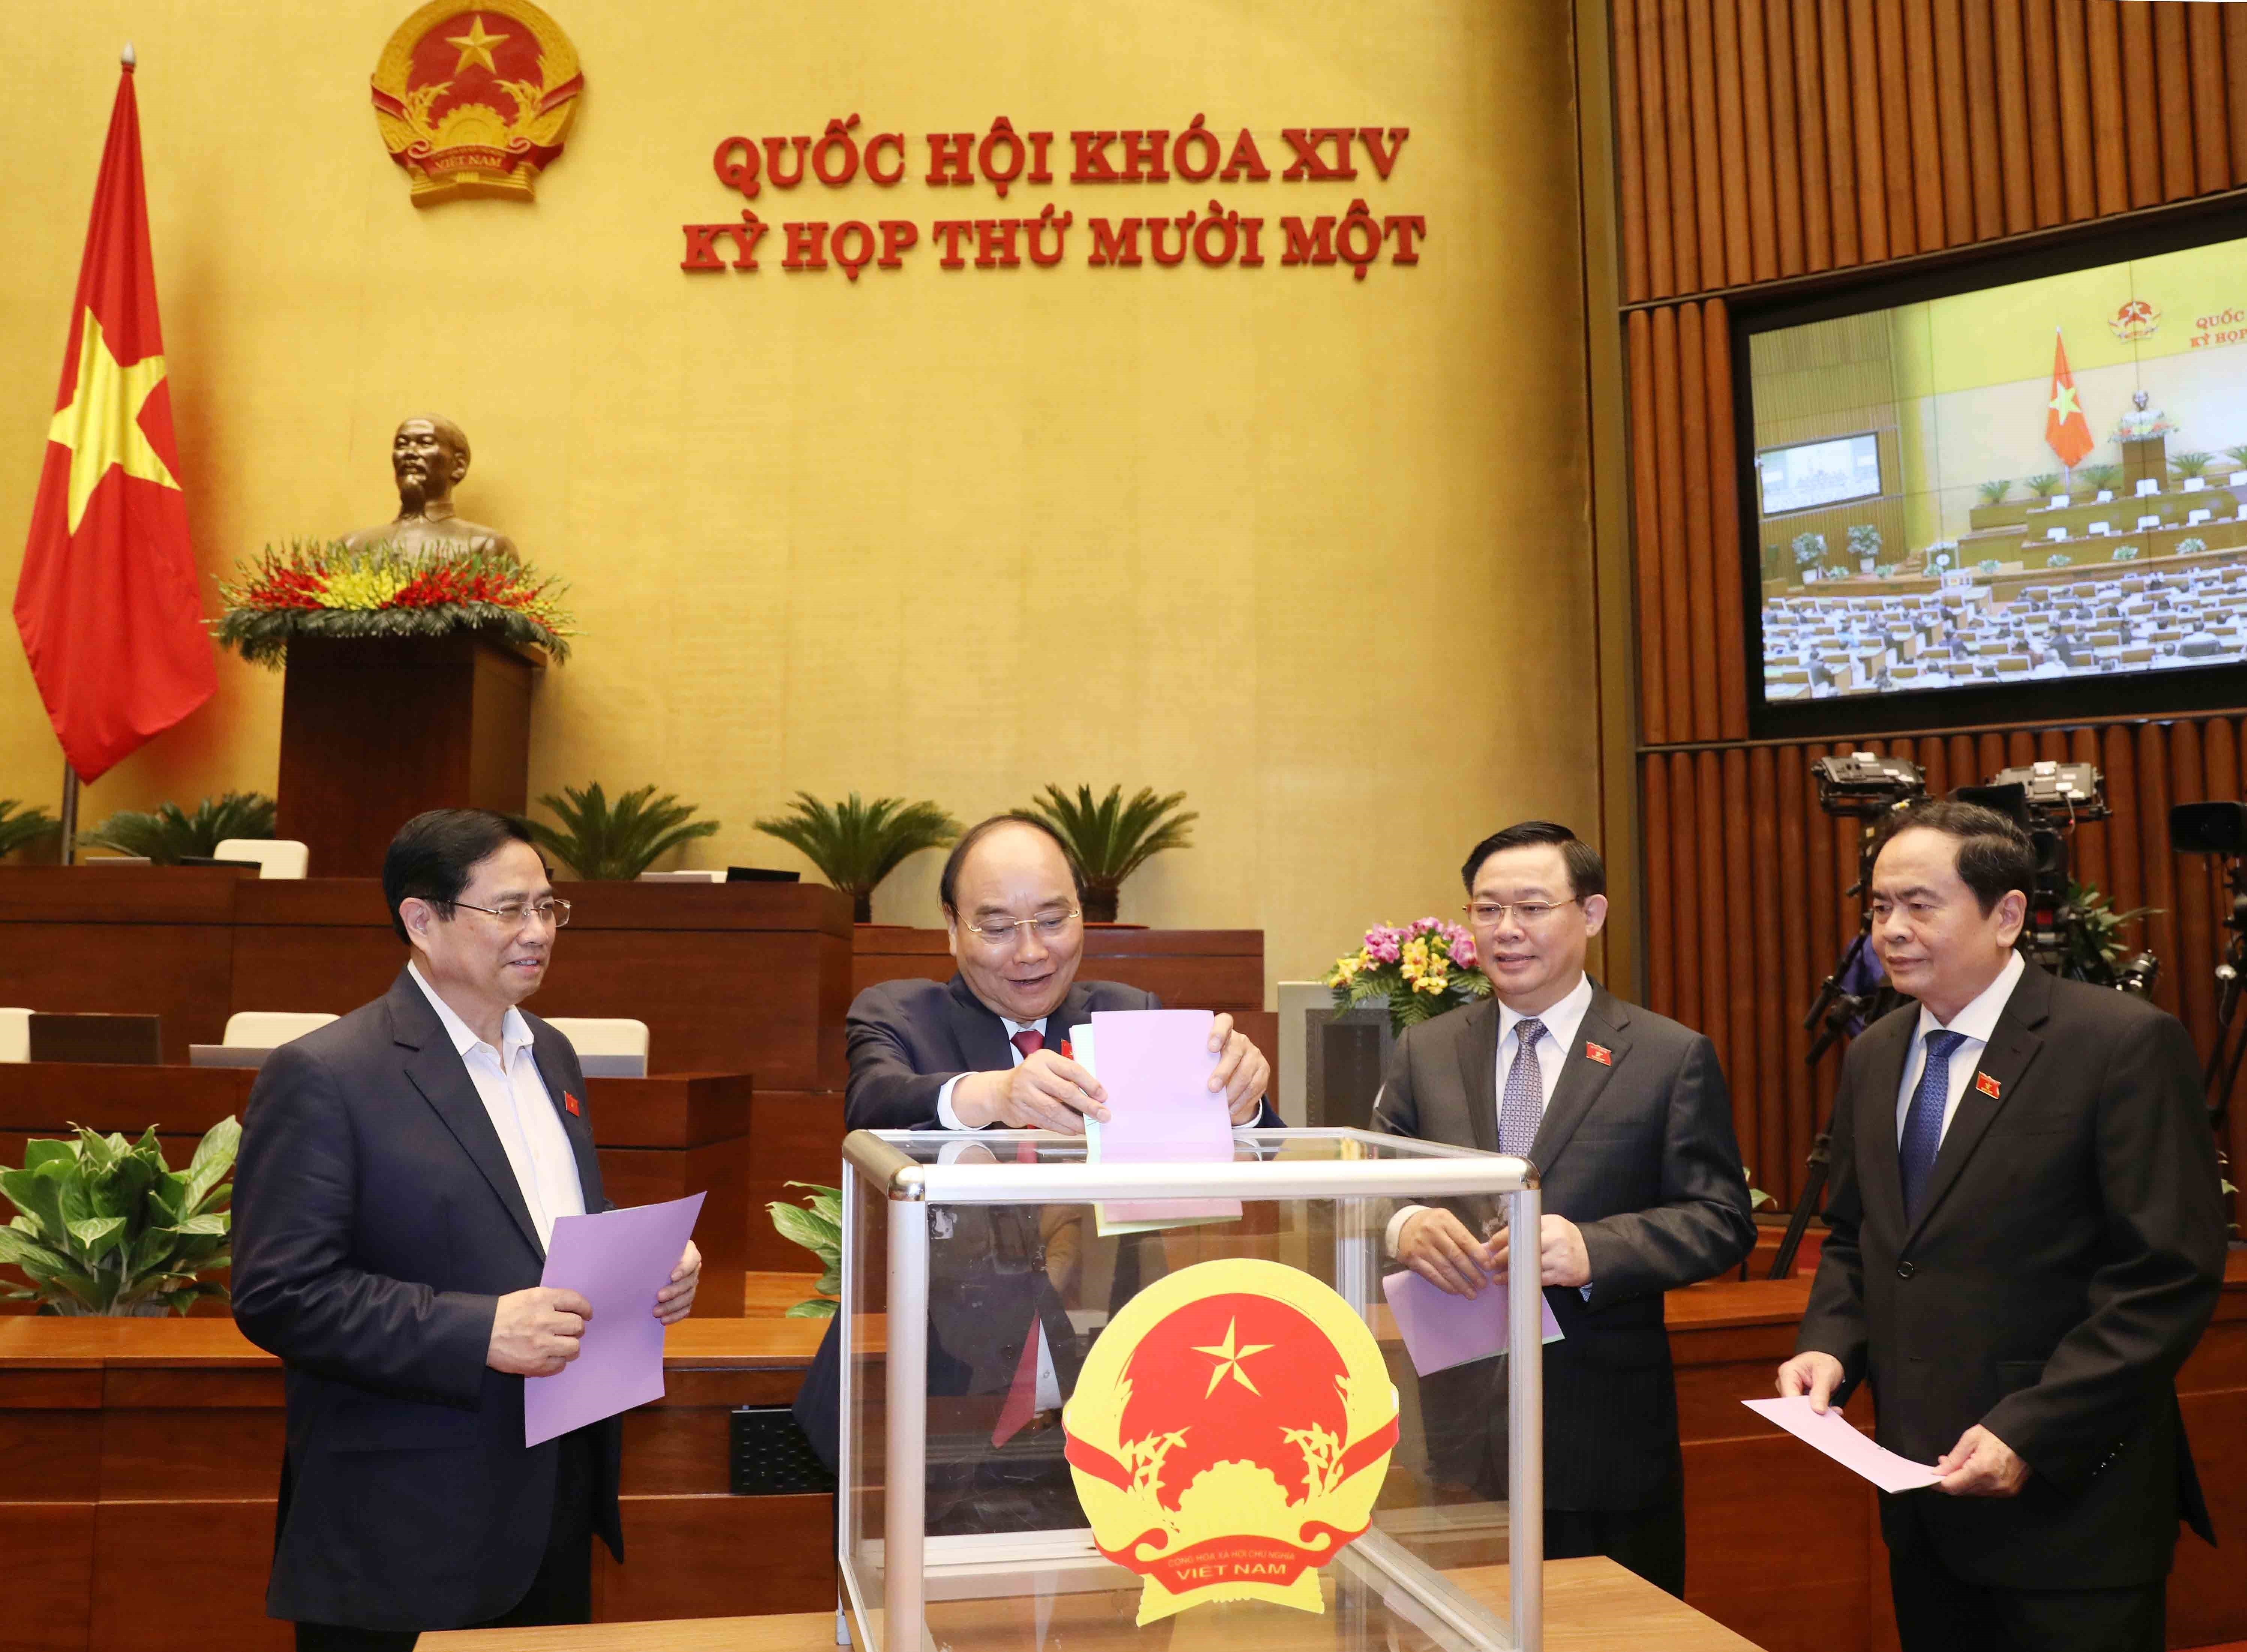 Dang Thi Ngoc Thinh relieved from position of State Vice President hinh anh 1